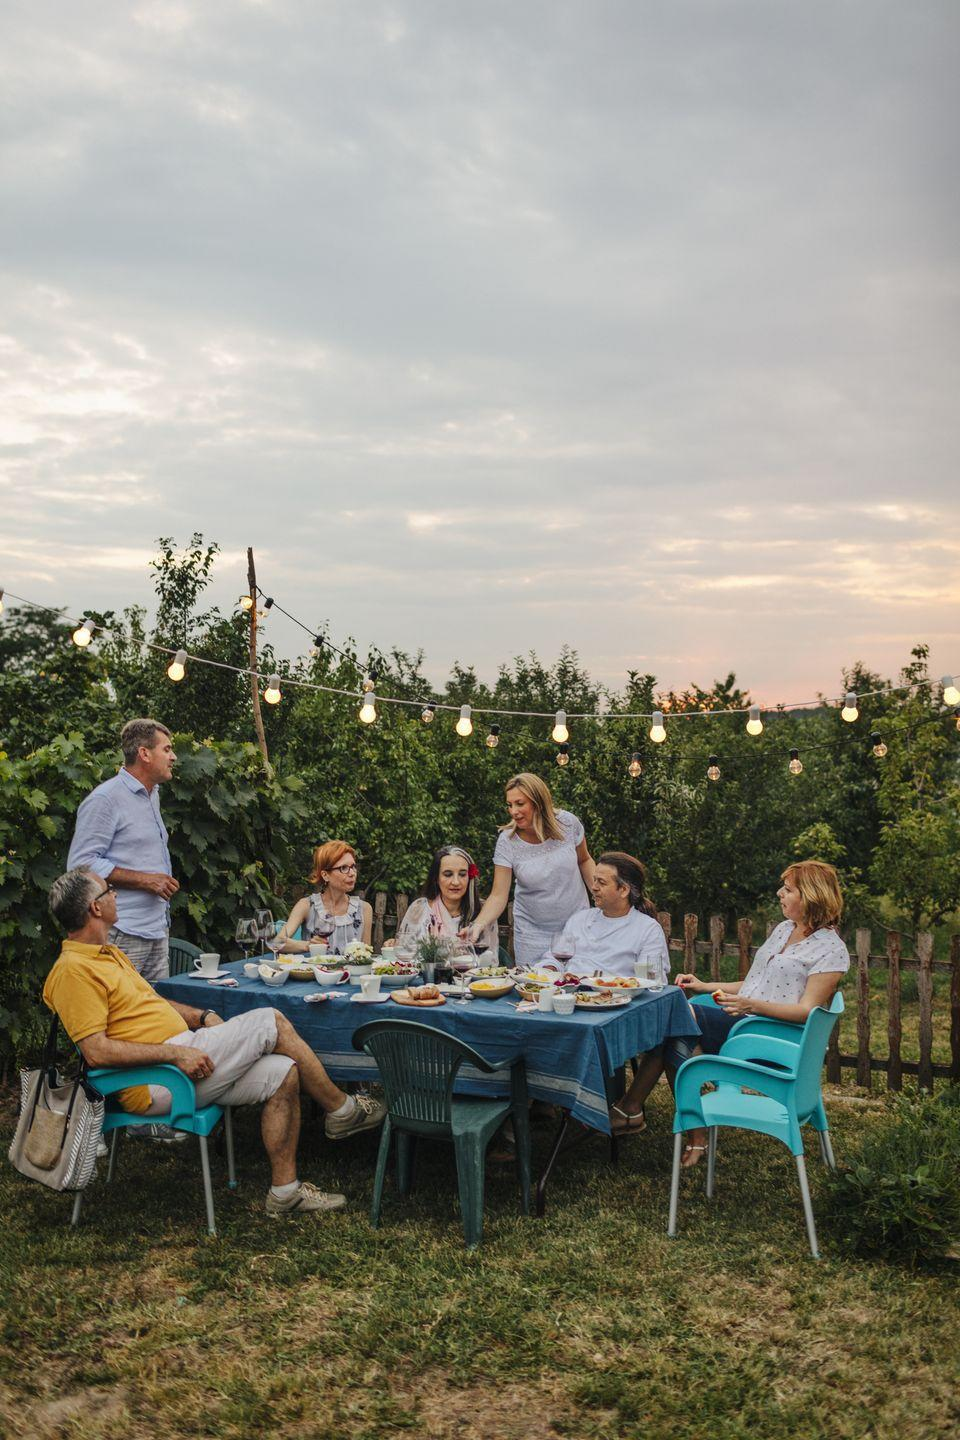 "<p>What better way to celebrate turning 50 than with an al fresco dinner party? Some tasty bites, a few string lights, and your closest friends and family are all you'll need to put together the perfect evening. </p><p><a class=""link rapid-noclick-resp"" href=""https://go.redirectingat.com?id=74968X1596630&url=https%3A%2F%2Fwww.walmart.com%2Fip%2FBetter-Homes-Gardens-Solar-Powered-15-Count-Edison-Bulb-Warm-White-LED-String-Lights-Black-Wire%2F639808173&sref=https%3A%2F%2Fwww.thepioneerwoman.com%2Fhome-lifestyle%2Fentertaining%2Fg34192298%2F50th-birthday-party-ideas%2F"" rel=""nofollow noopener"" target=""_blank"" data-ylk=""slk:SHOP STRING LIGHTS"">SHOP STRING LIGHTS </a></p>"